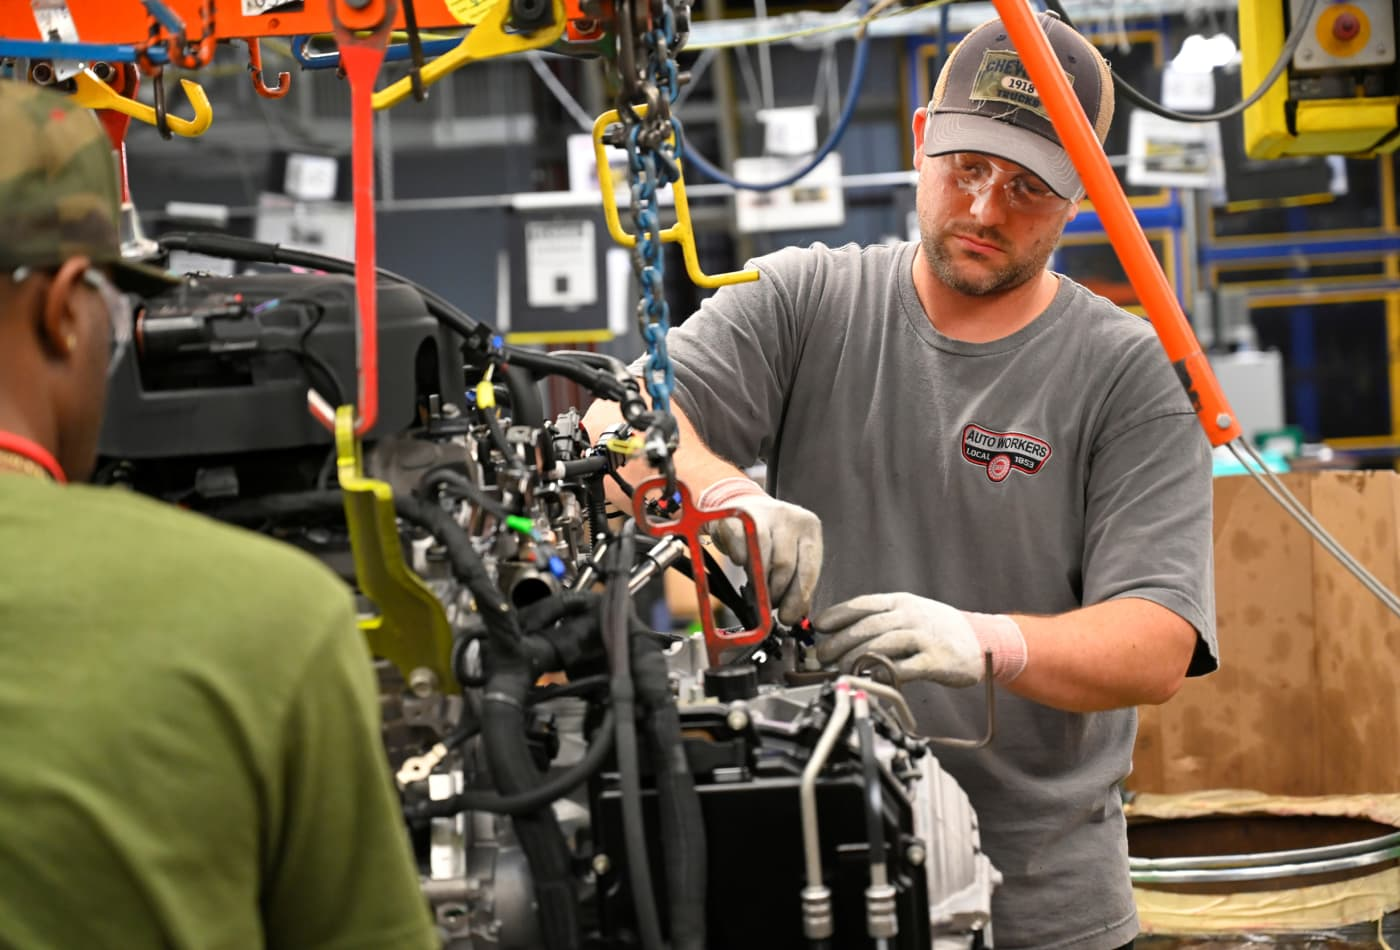 GM to invest more than $2 billion in U.S. manufacturing to increase electric vehicle production